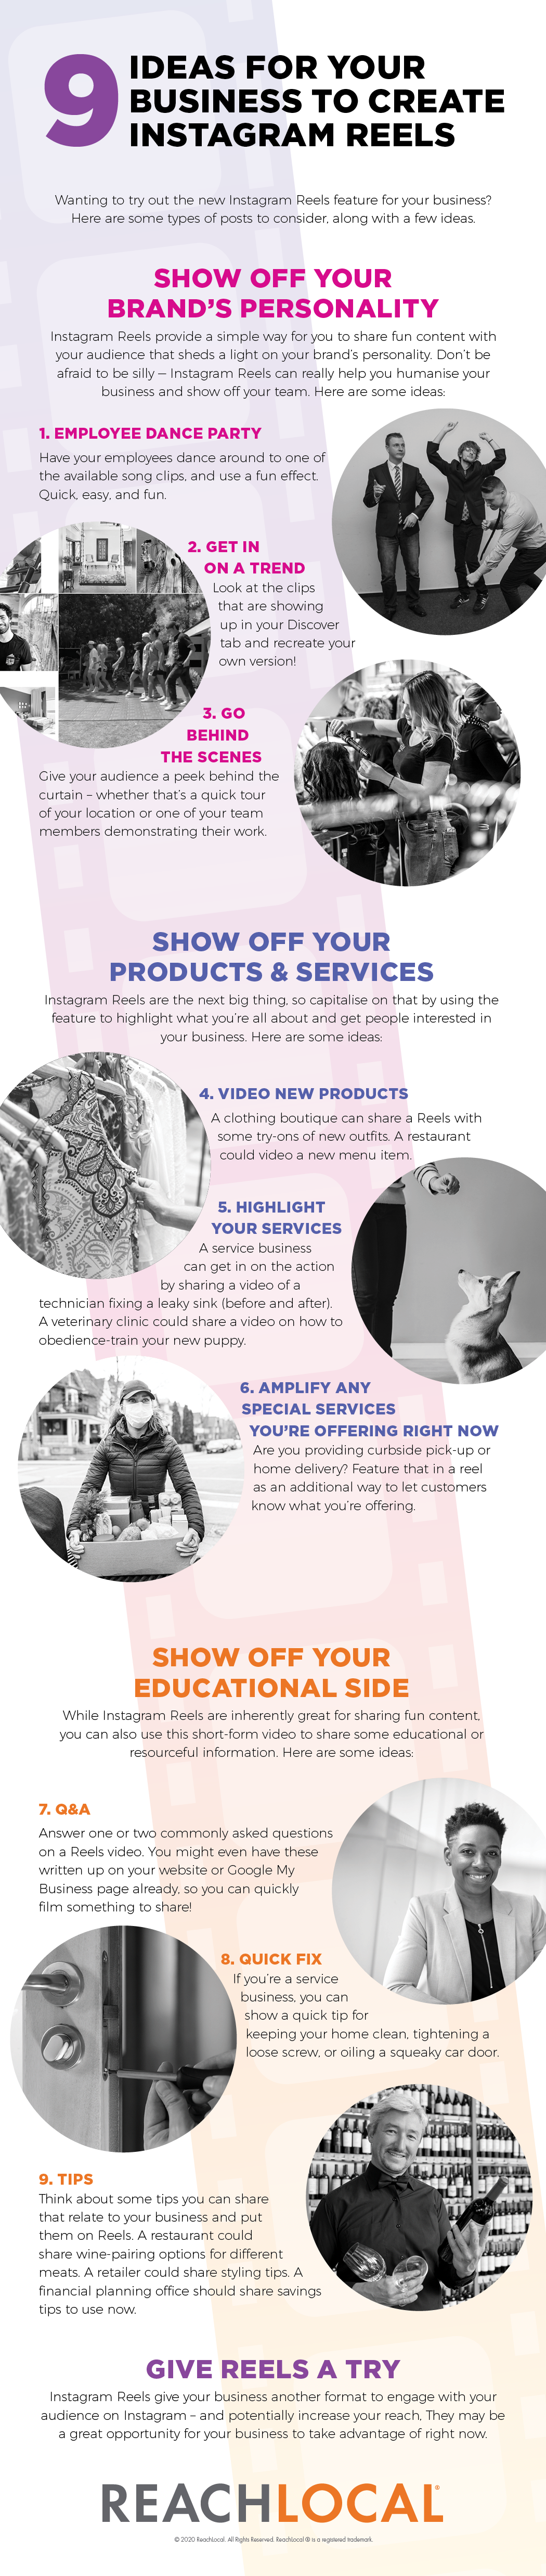 9 Ideas for Your Business to Create Instagram Reels Infographic by ReachLocal